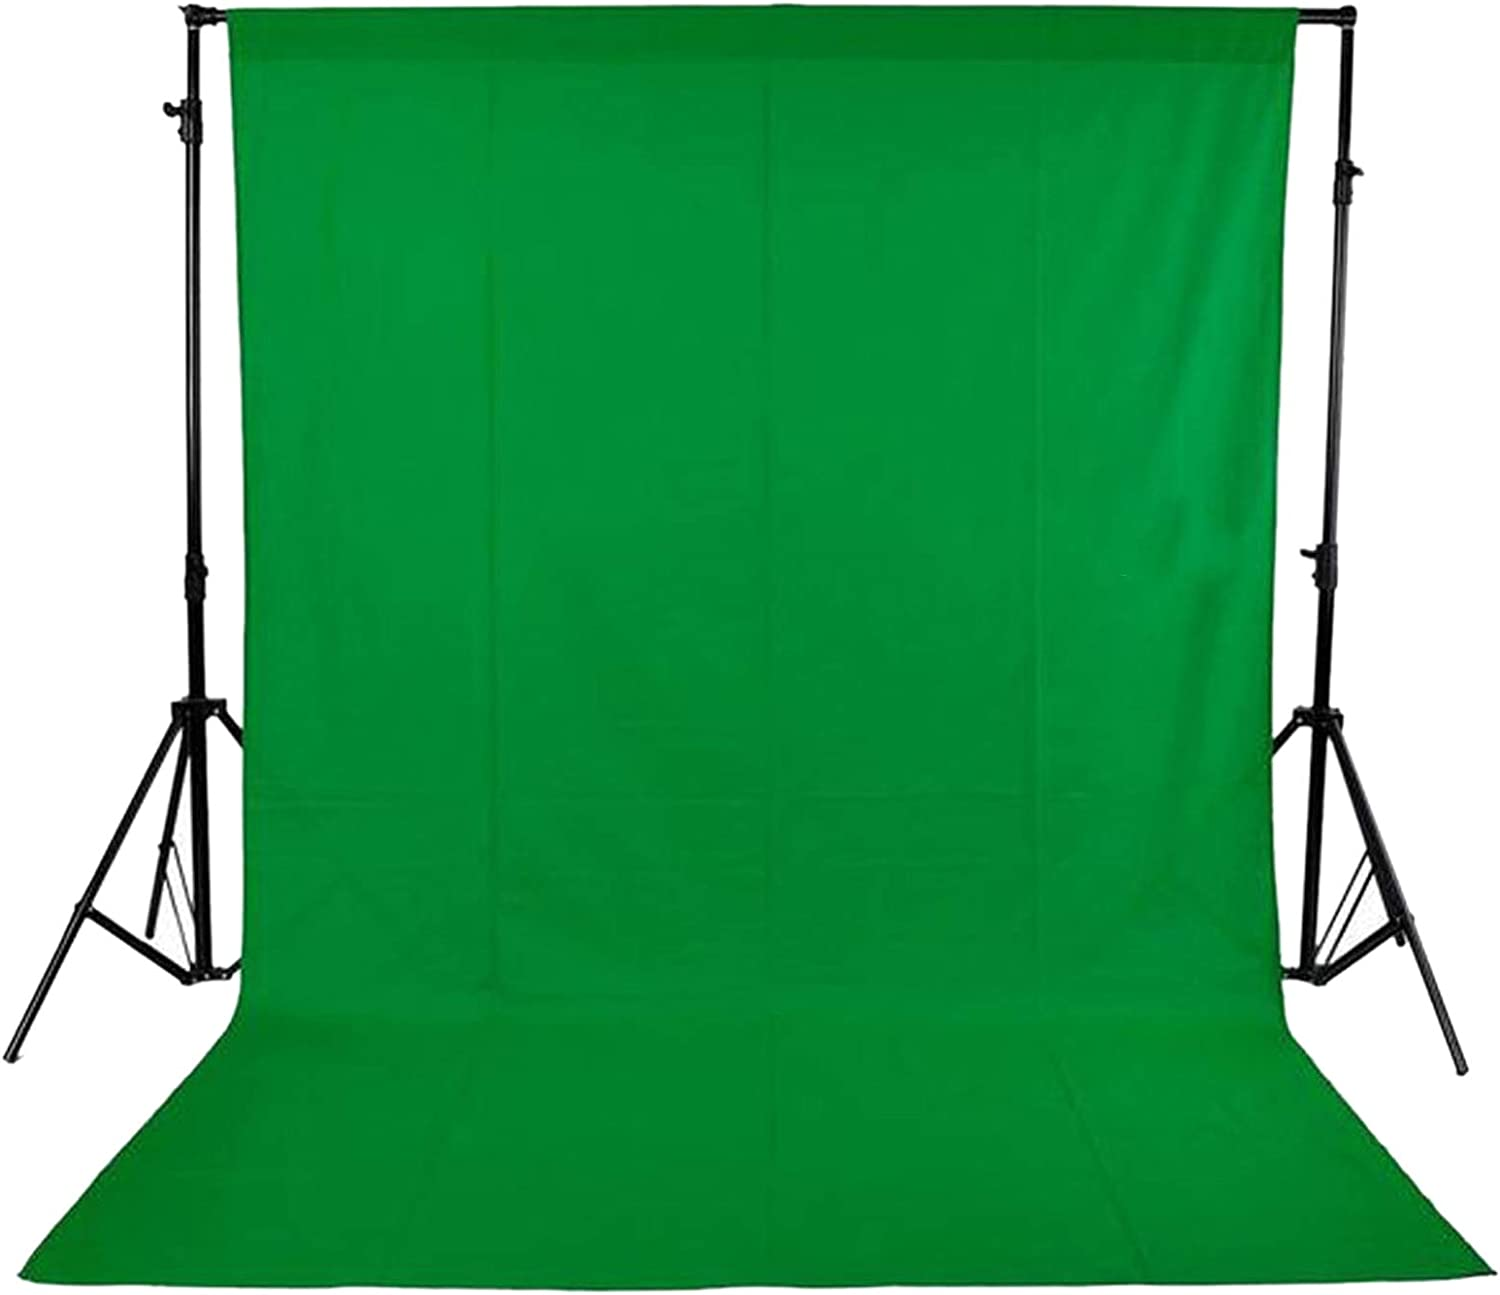 Andoer Photography Studio Video 1.8 * 2.7 m / 5.9 * 8.8ft Non Woven Fabric Background Screen - Green